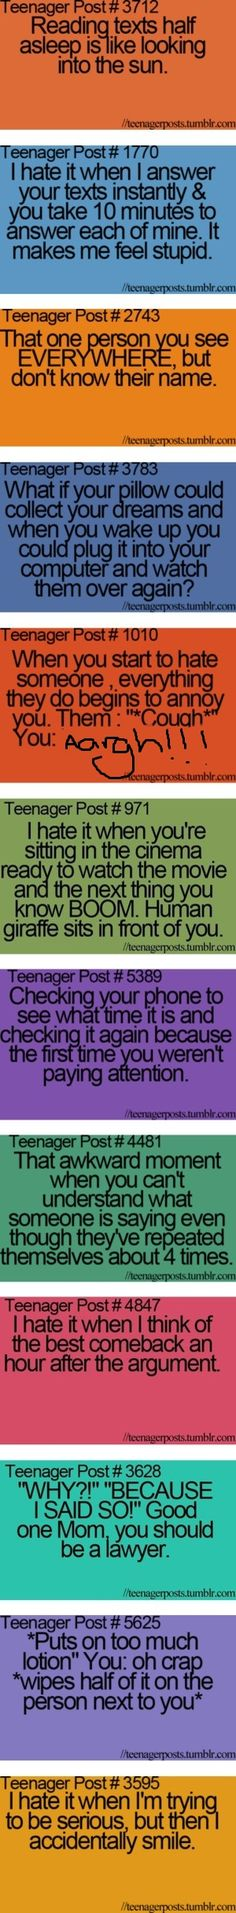 I am the human giraffe though. But I make sure that I don't sit in front of anyone